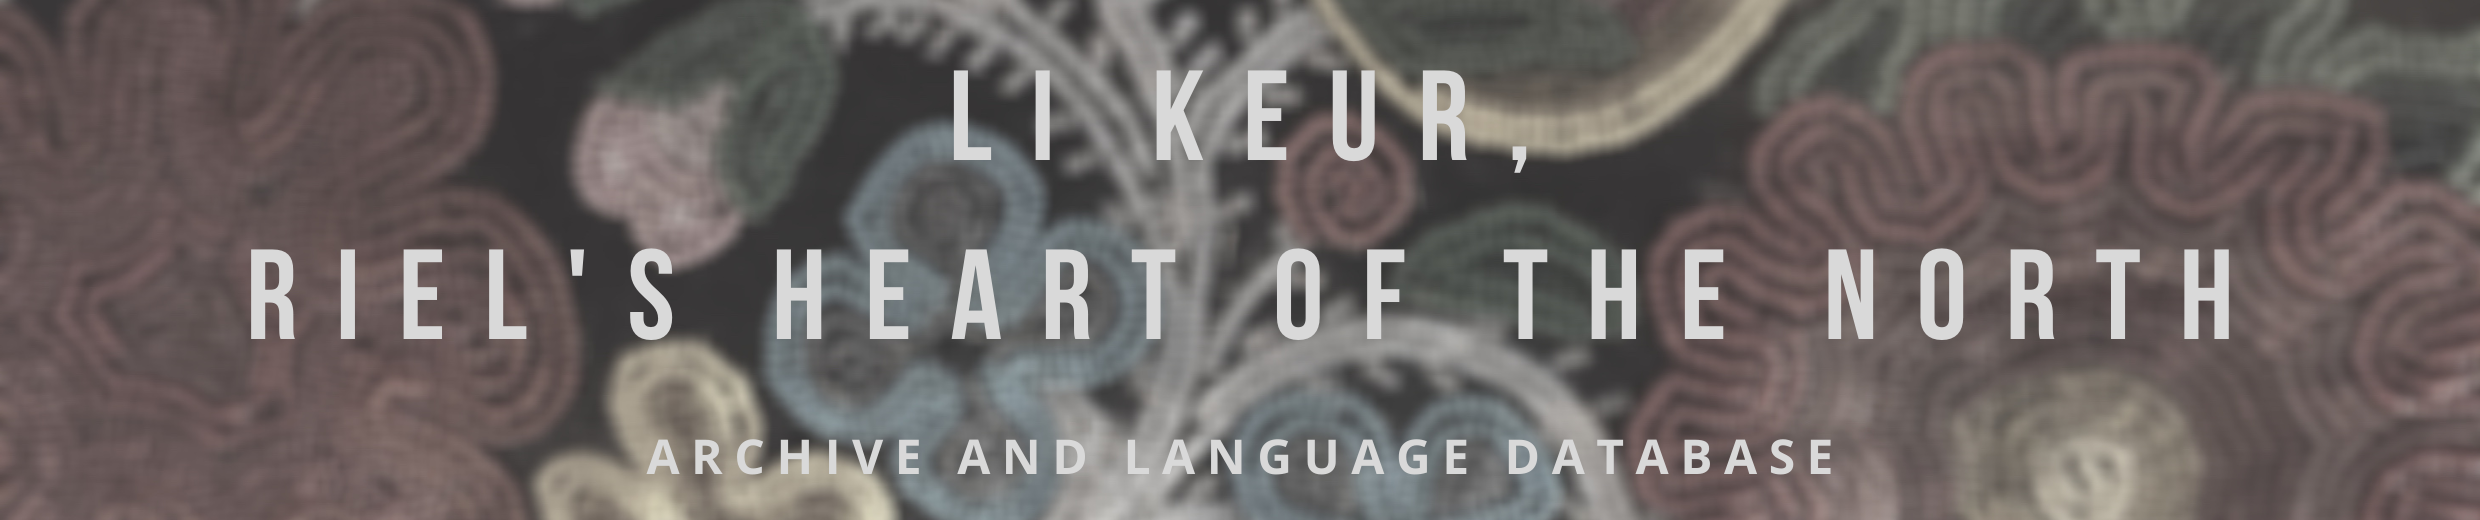 Riel, Heart of the North - Archive & Language Database